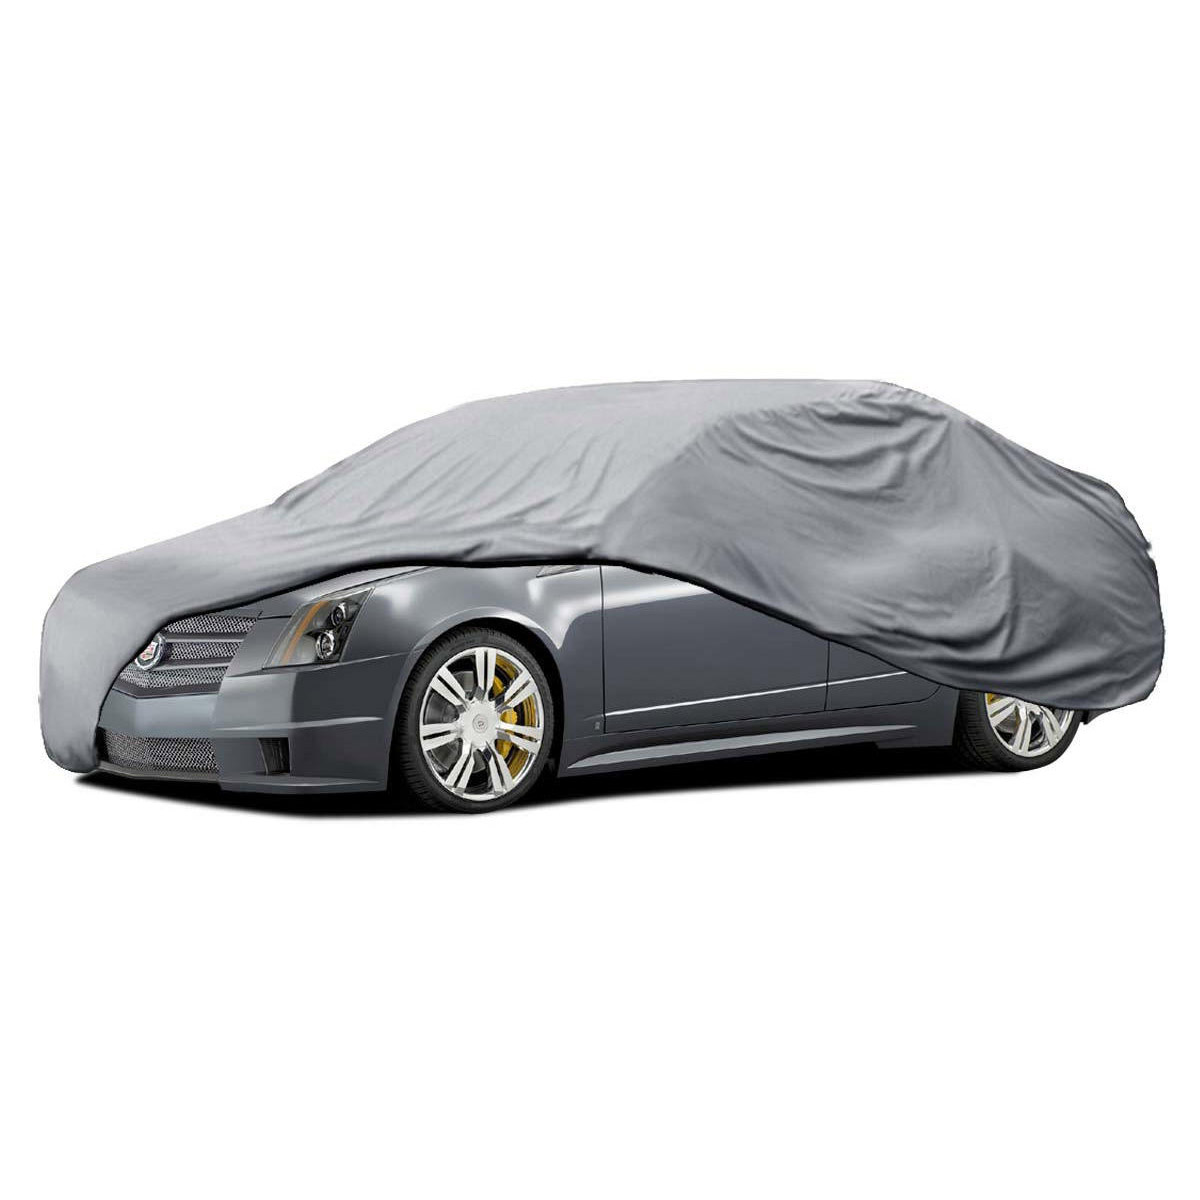 car cover for chevrolet camaro 67 89 4 layers outdoor waterproof sun dust ebay. Black Bedroom Furniture Sets. Home Design Ideas